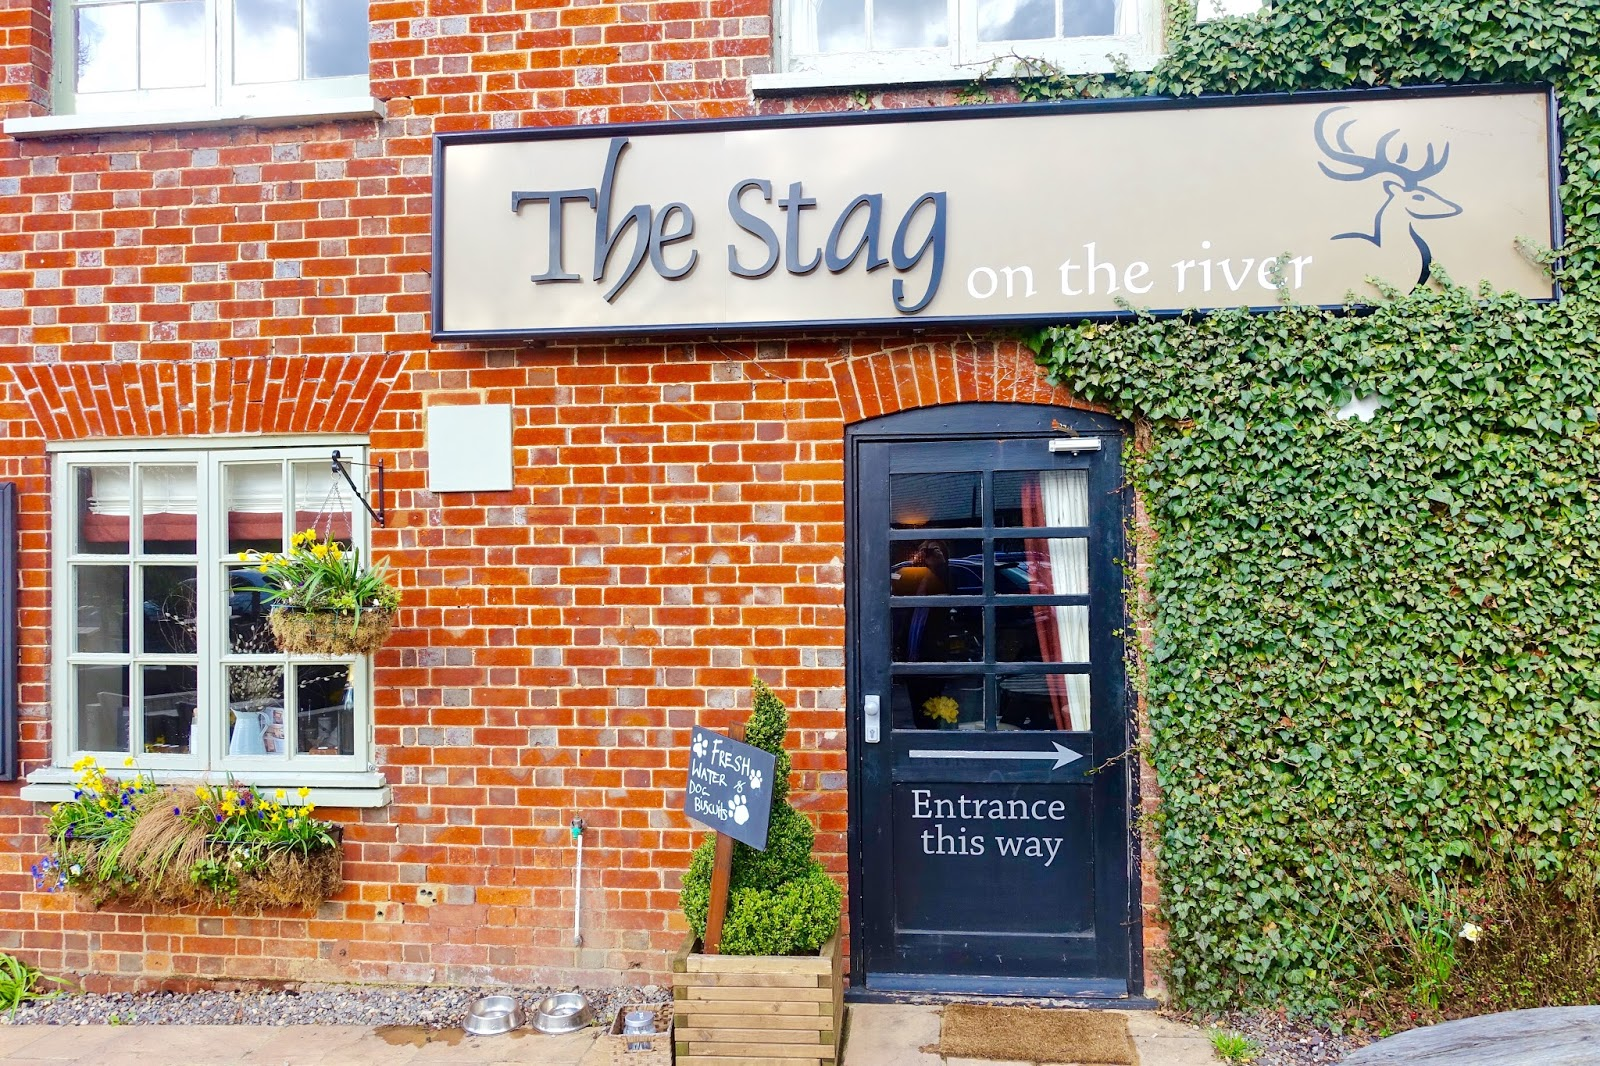 the stag on the river pub in surrey review